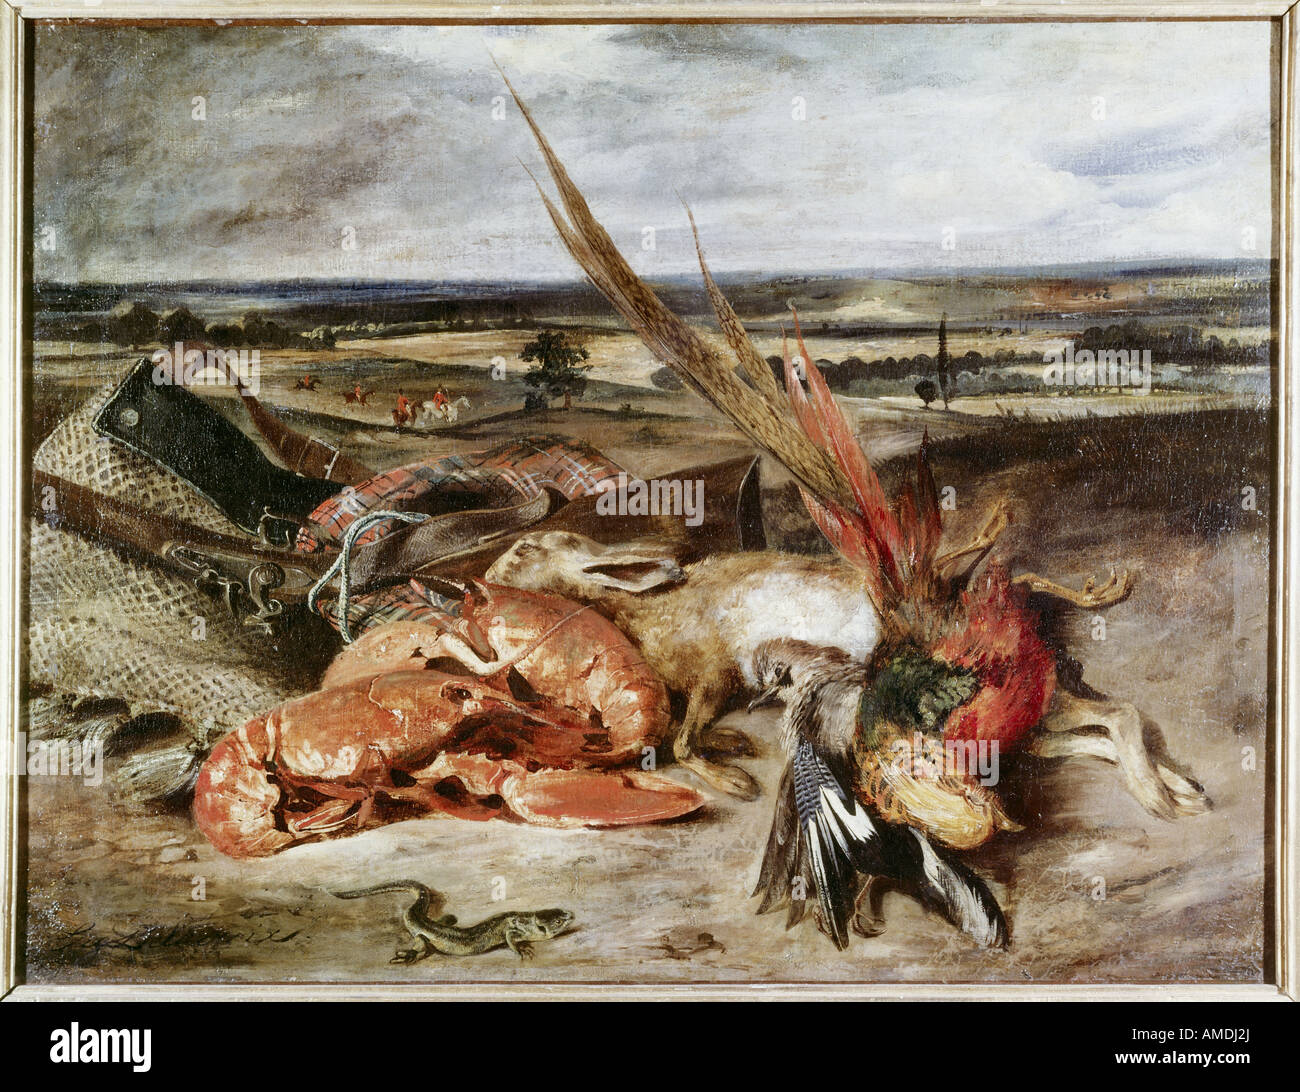 'fine arts, Delacroix, Eugene (1798 - 1863), painting, 'Still Life with Lobsters', 1826/1827, oil on - Stock Image